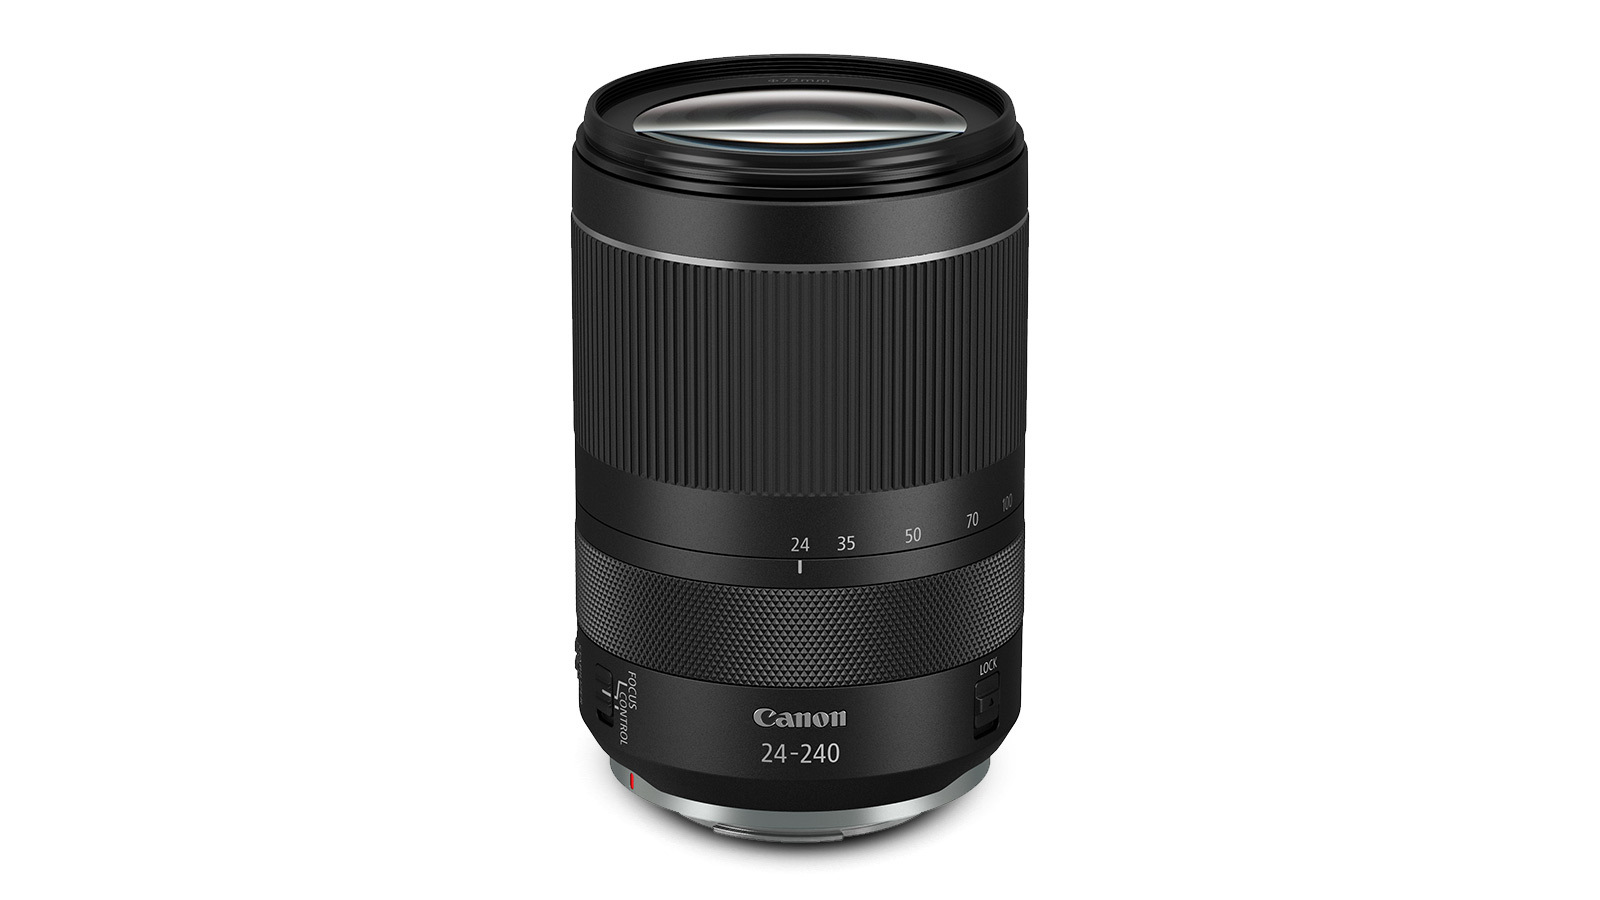 Canon's RF 24-240mm F4-6.3 First Lens with Dynamic IS